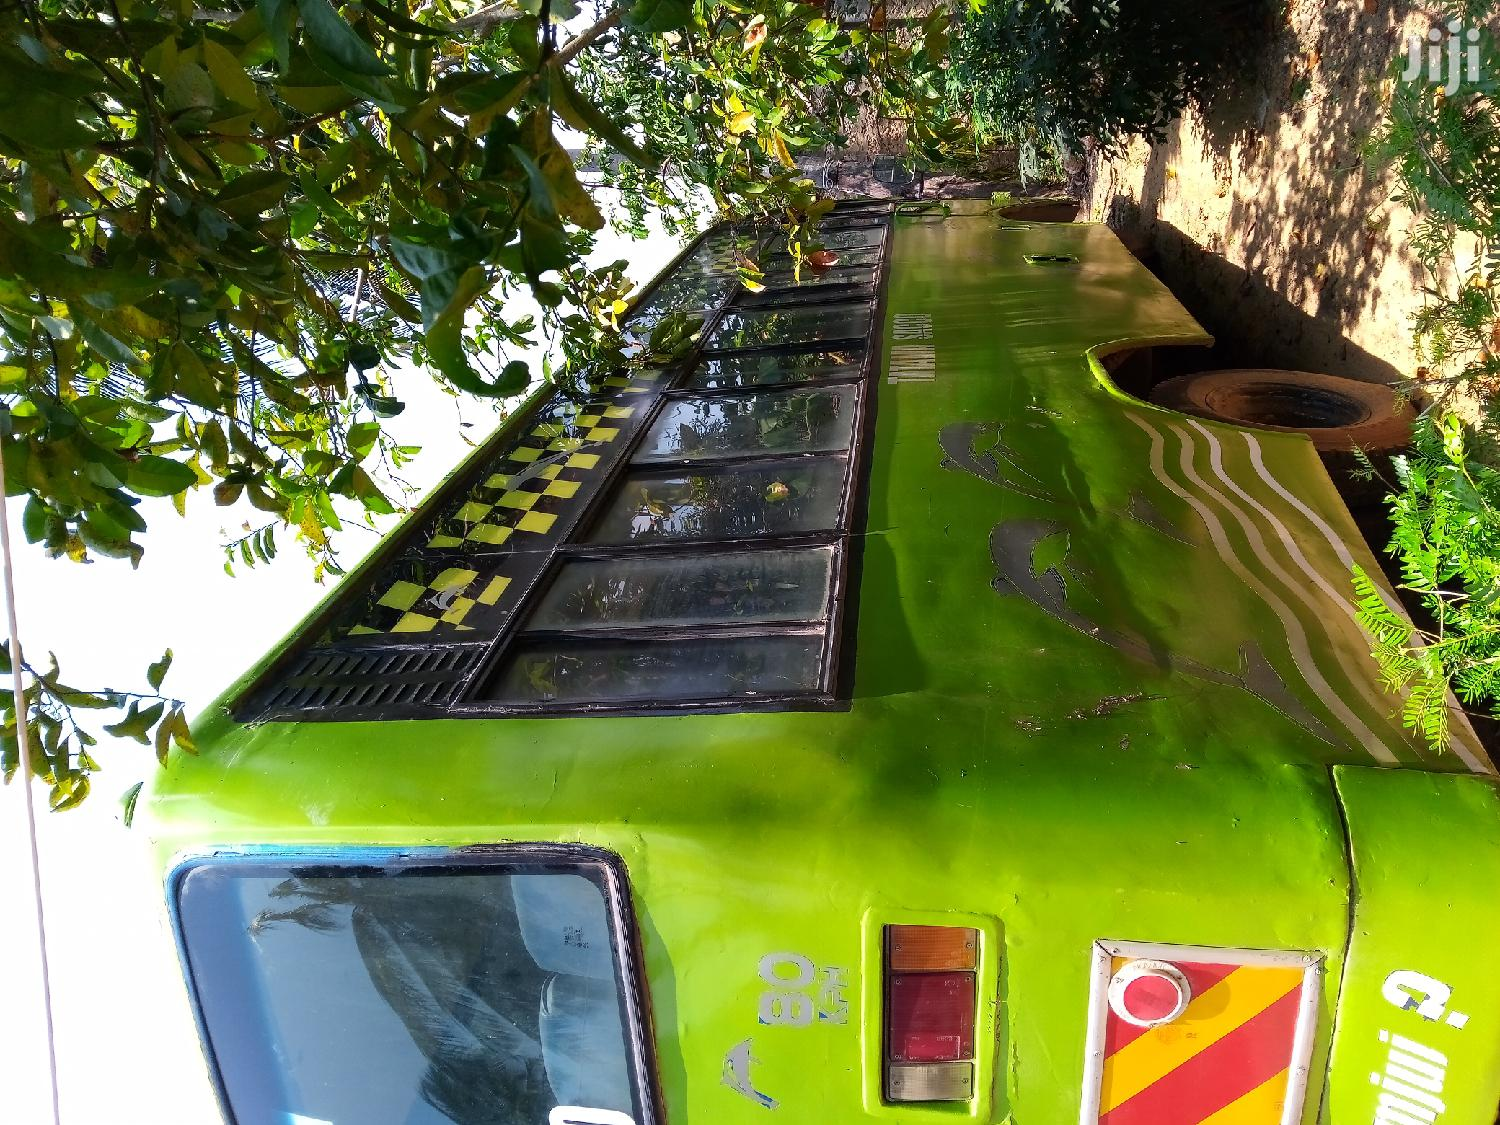 Archive: 27 Seater Isuzu Bus Nkr 2010 Green For Sale